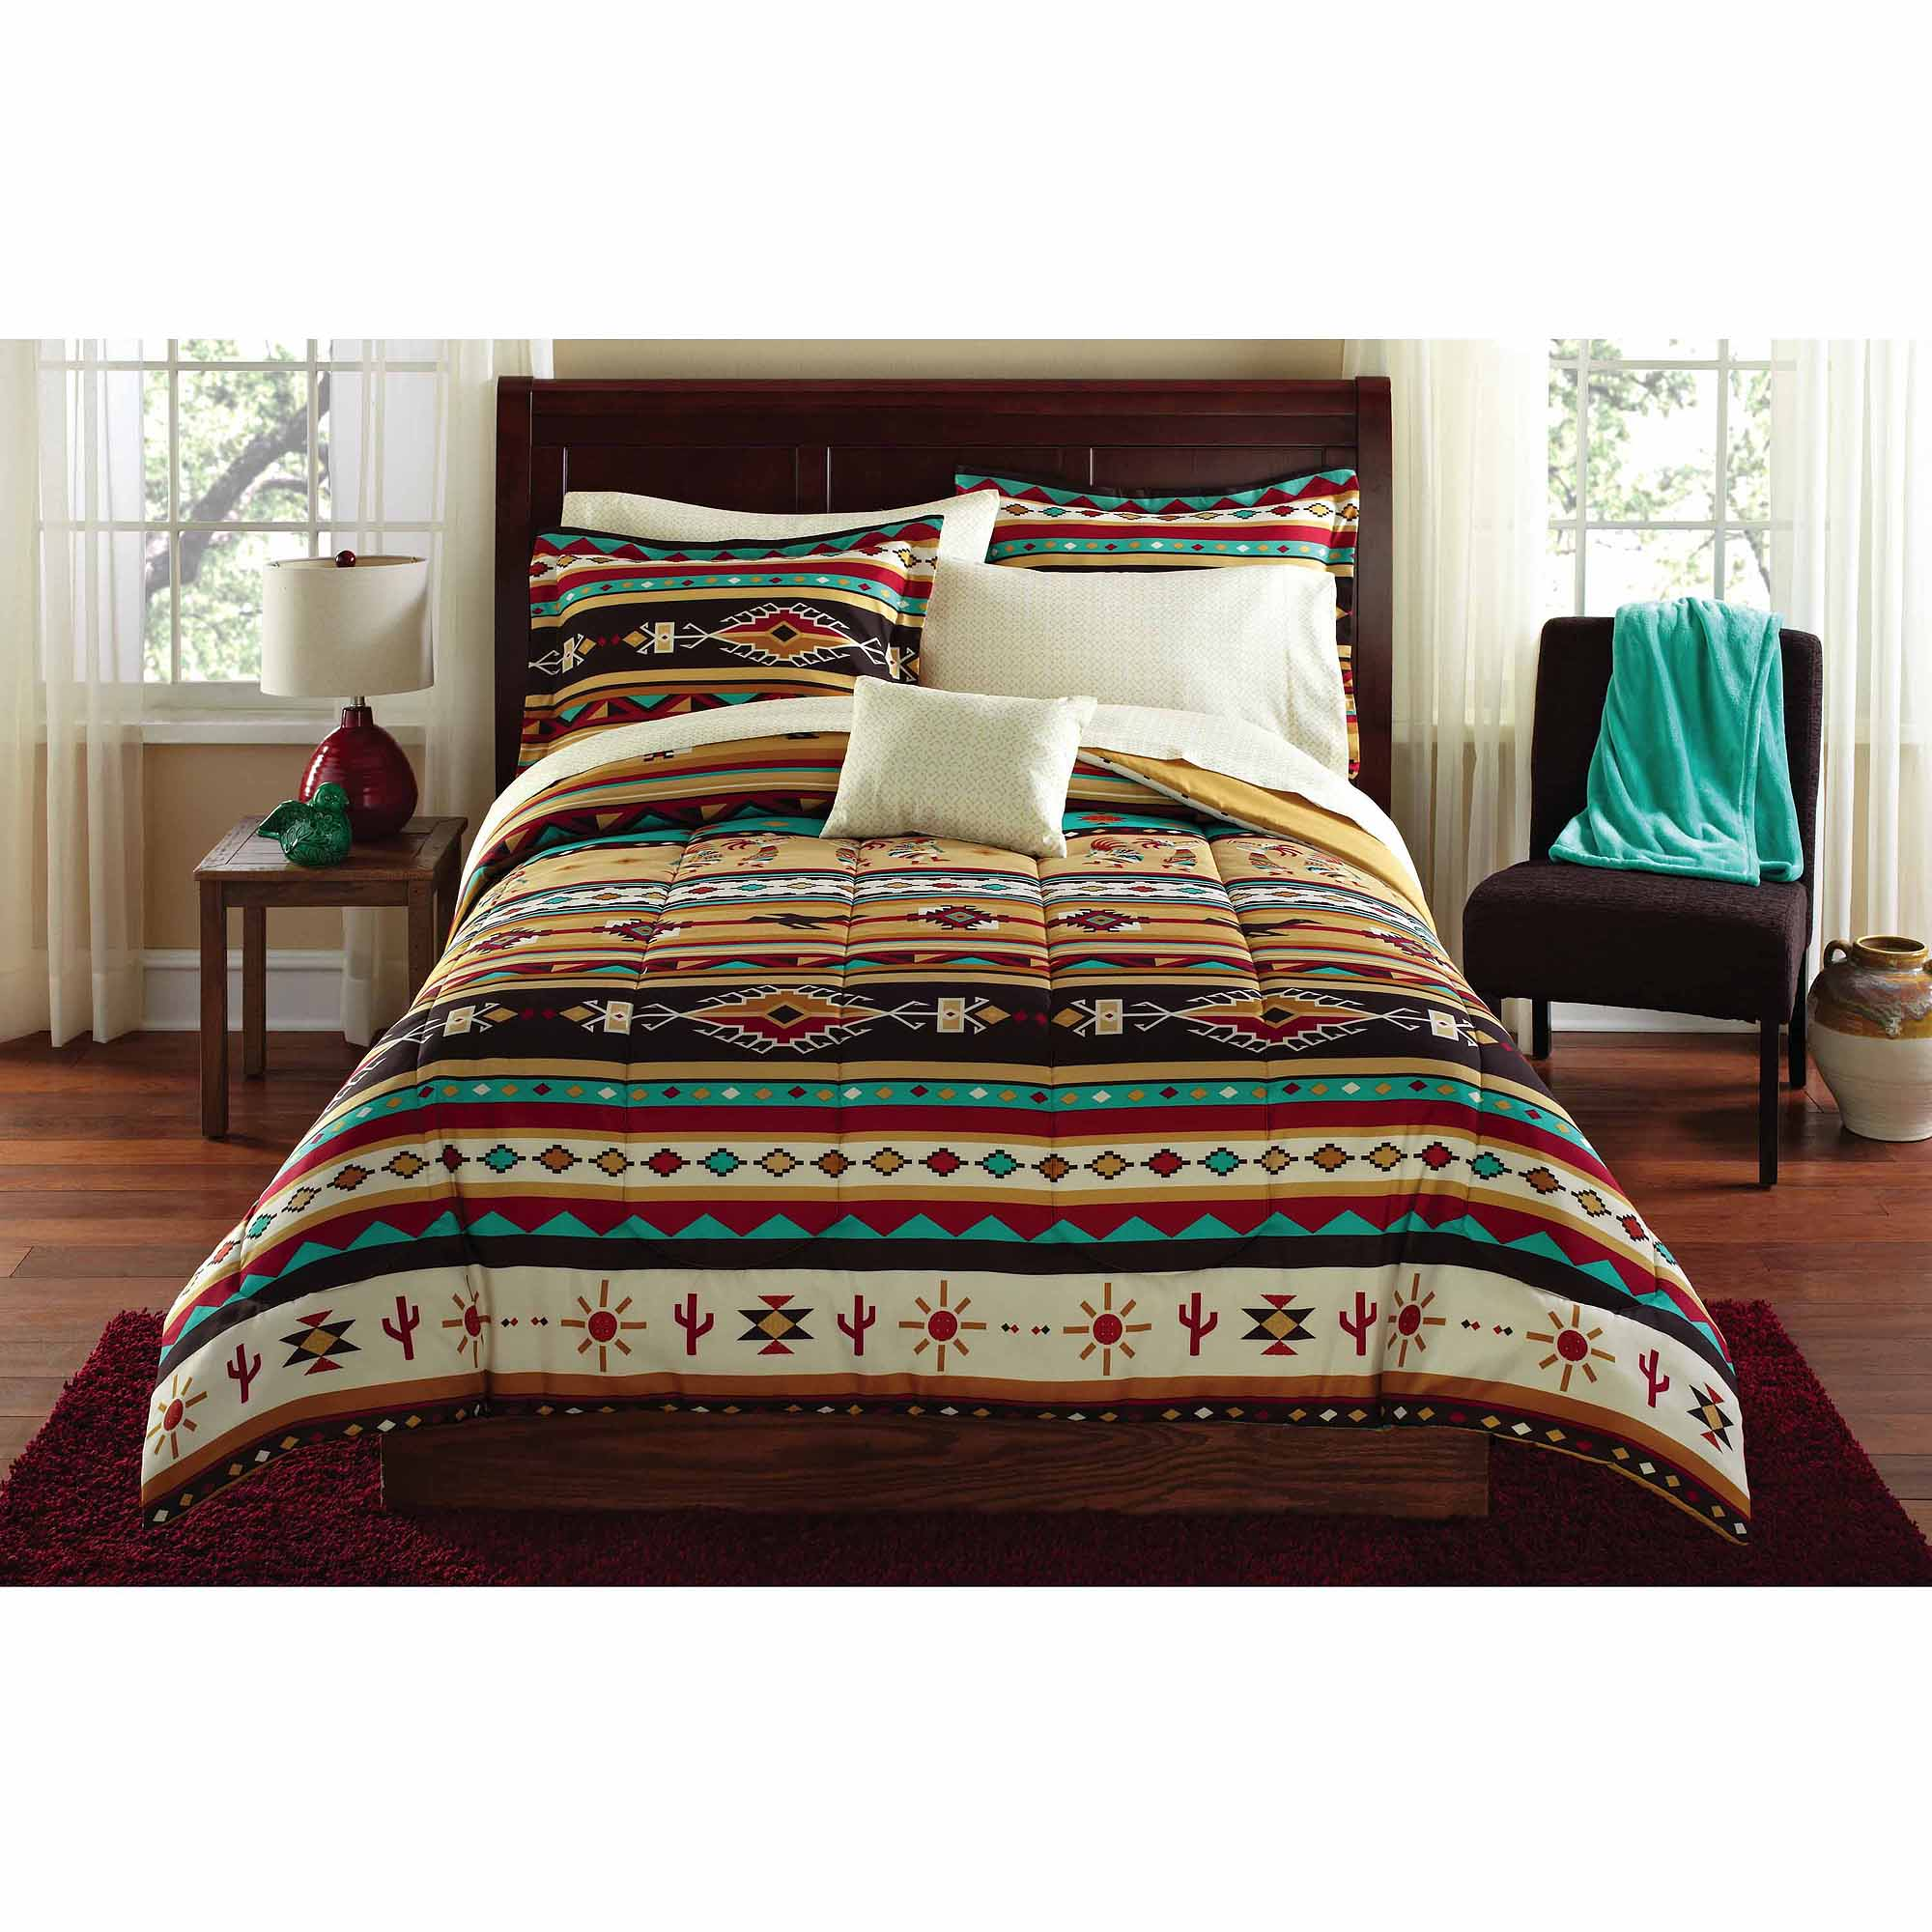 rodeo red bedding western star size lone decor bed set queen